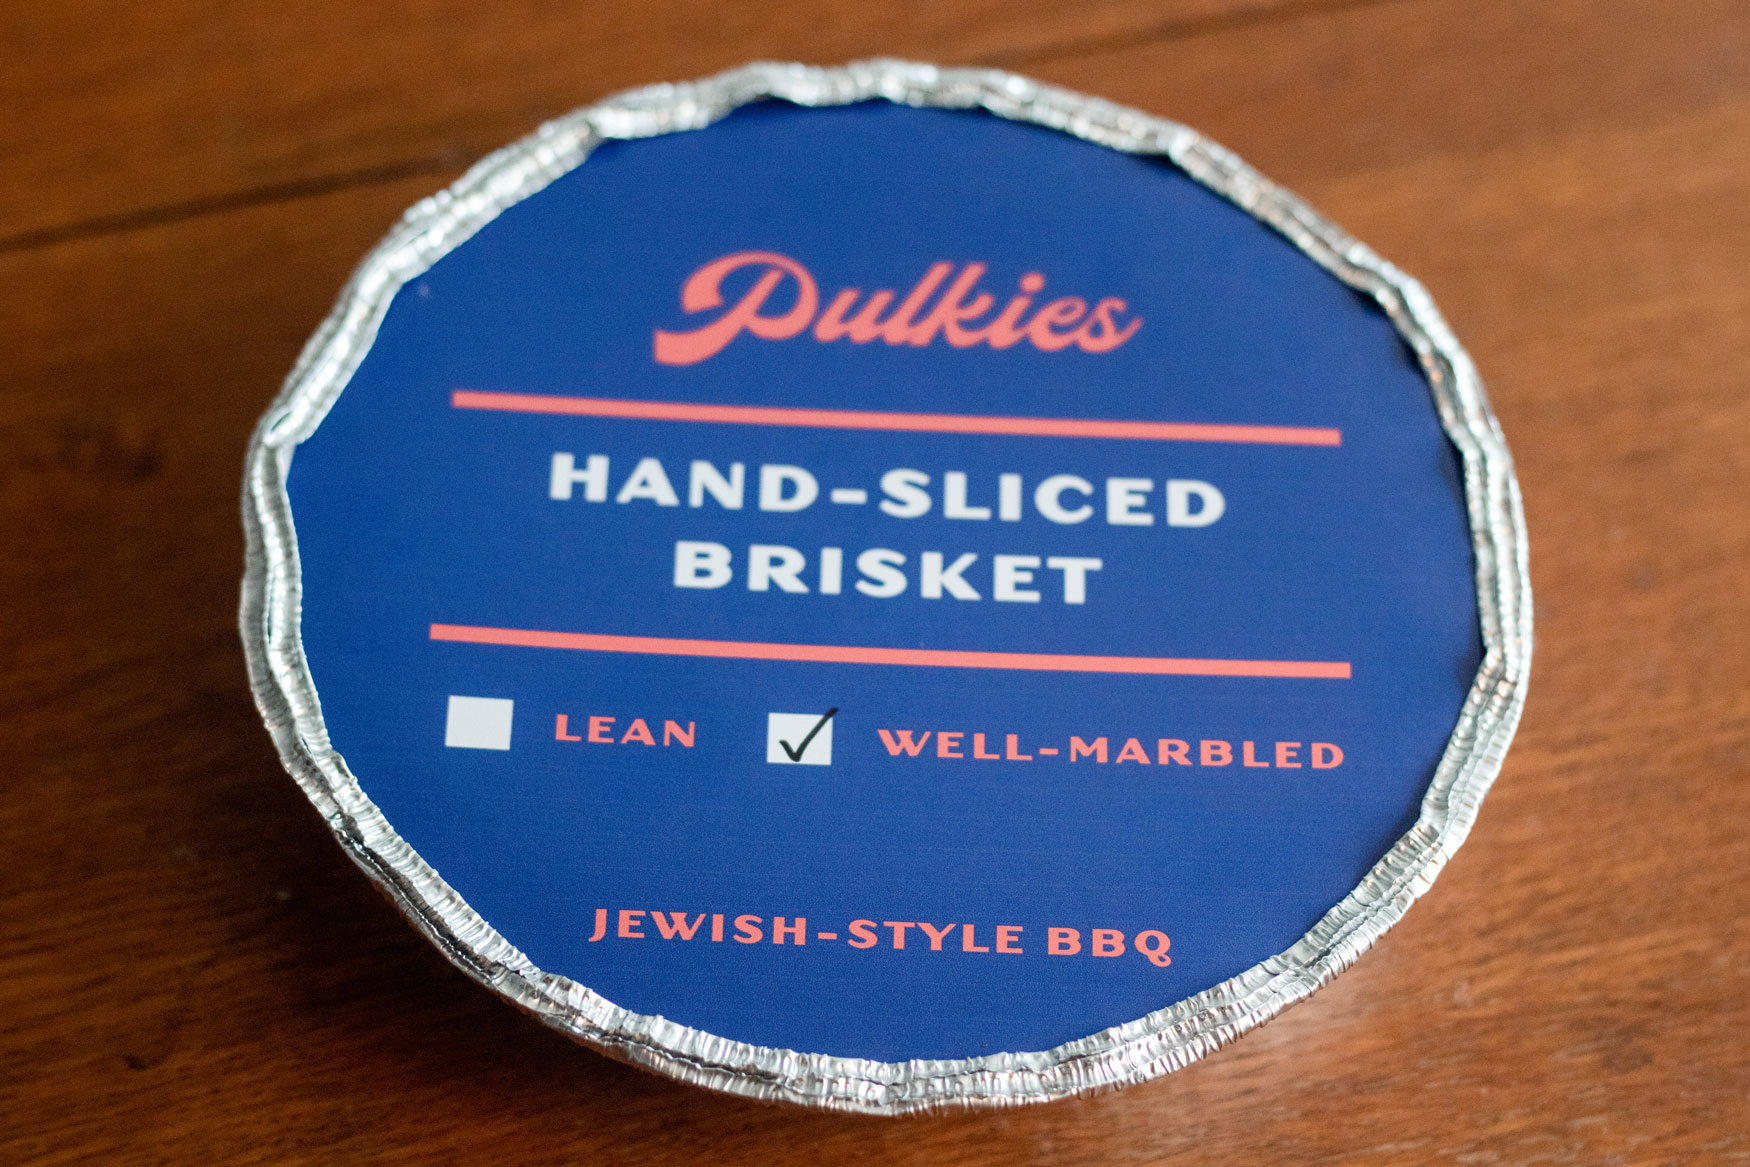 A sealed circular foil container filled with hand-sliced brisket.